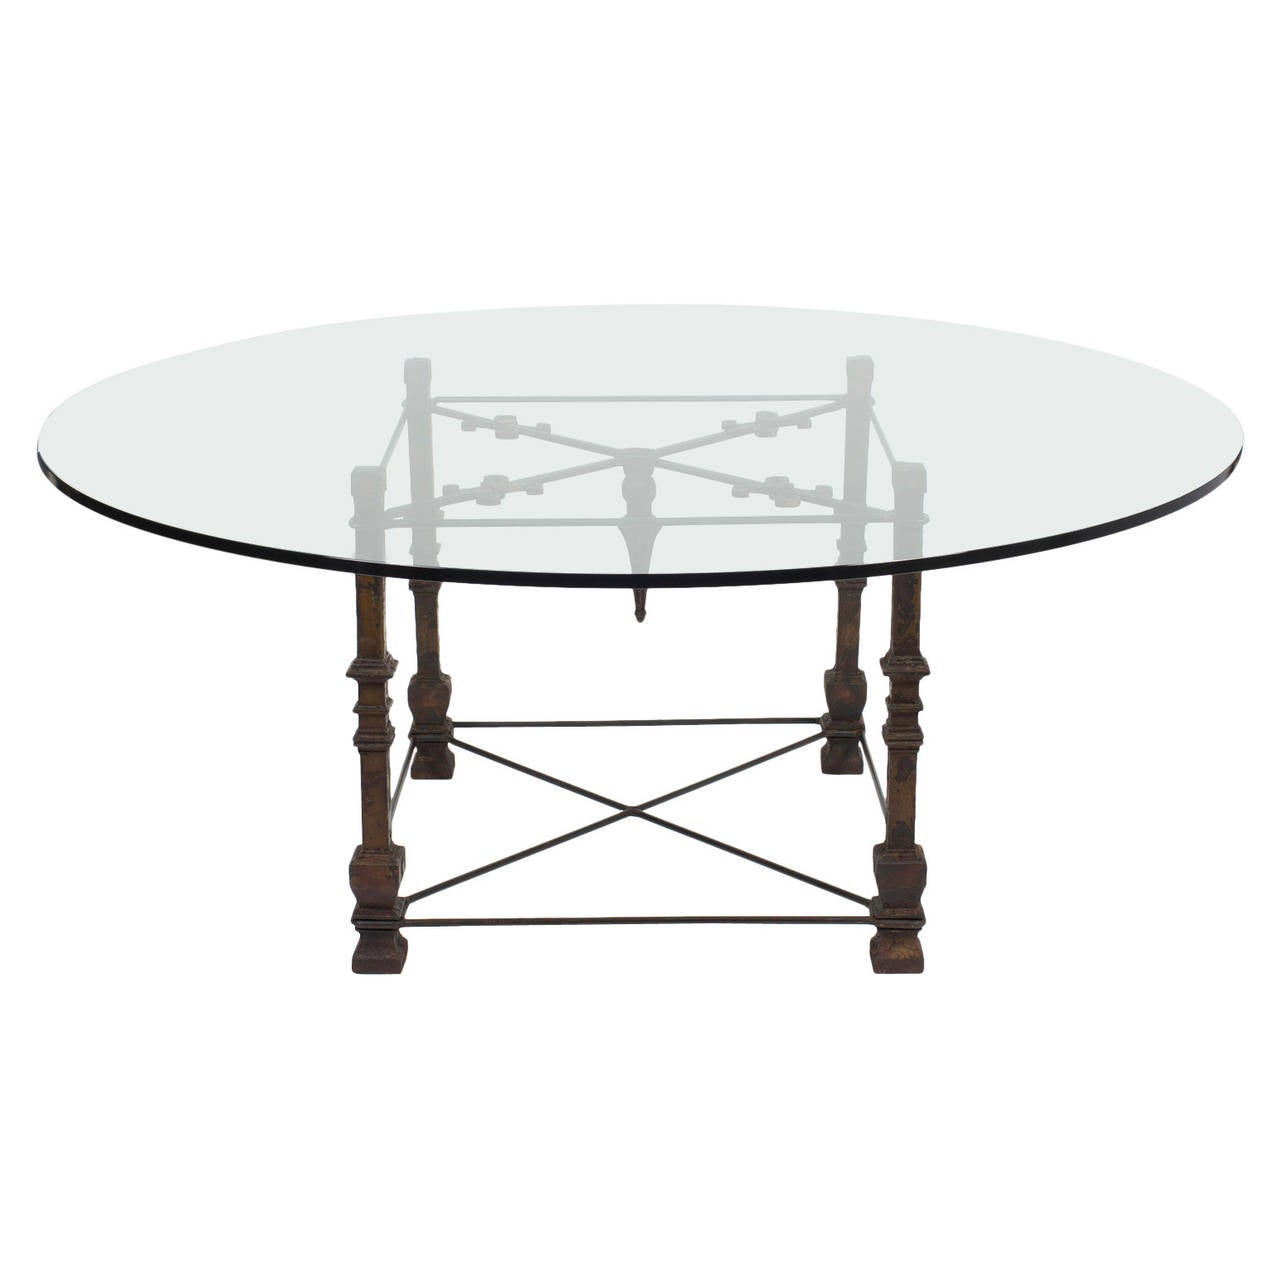 antique forged iron dining table with glass top at 1stdibs. Black Bedroom Furniture Sets. Home Design Ideas